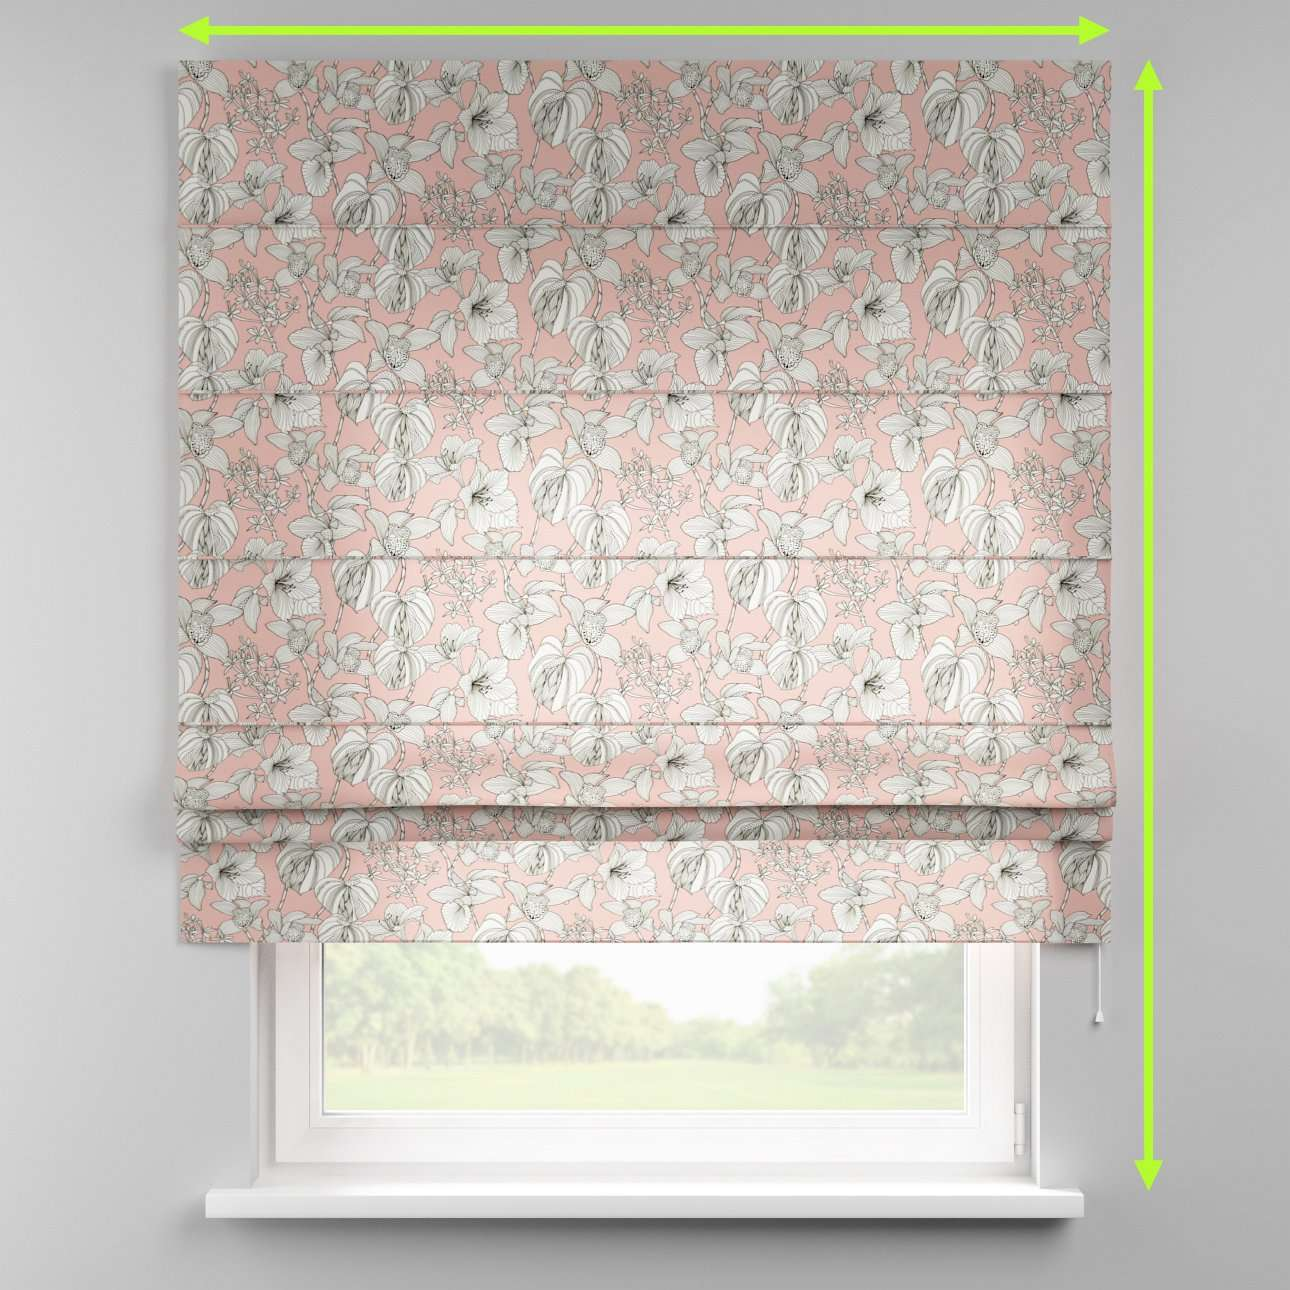 Padva roman blind in collection SALE, fabric: 137-74